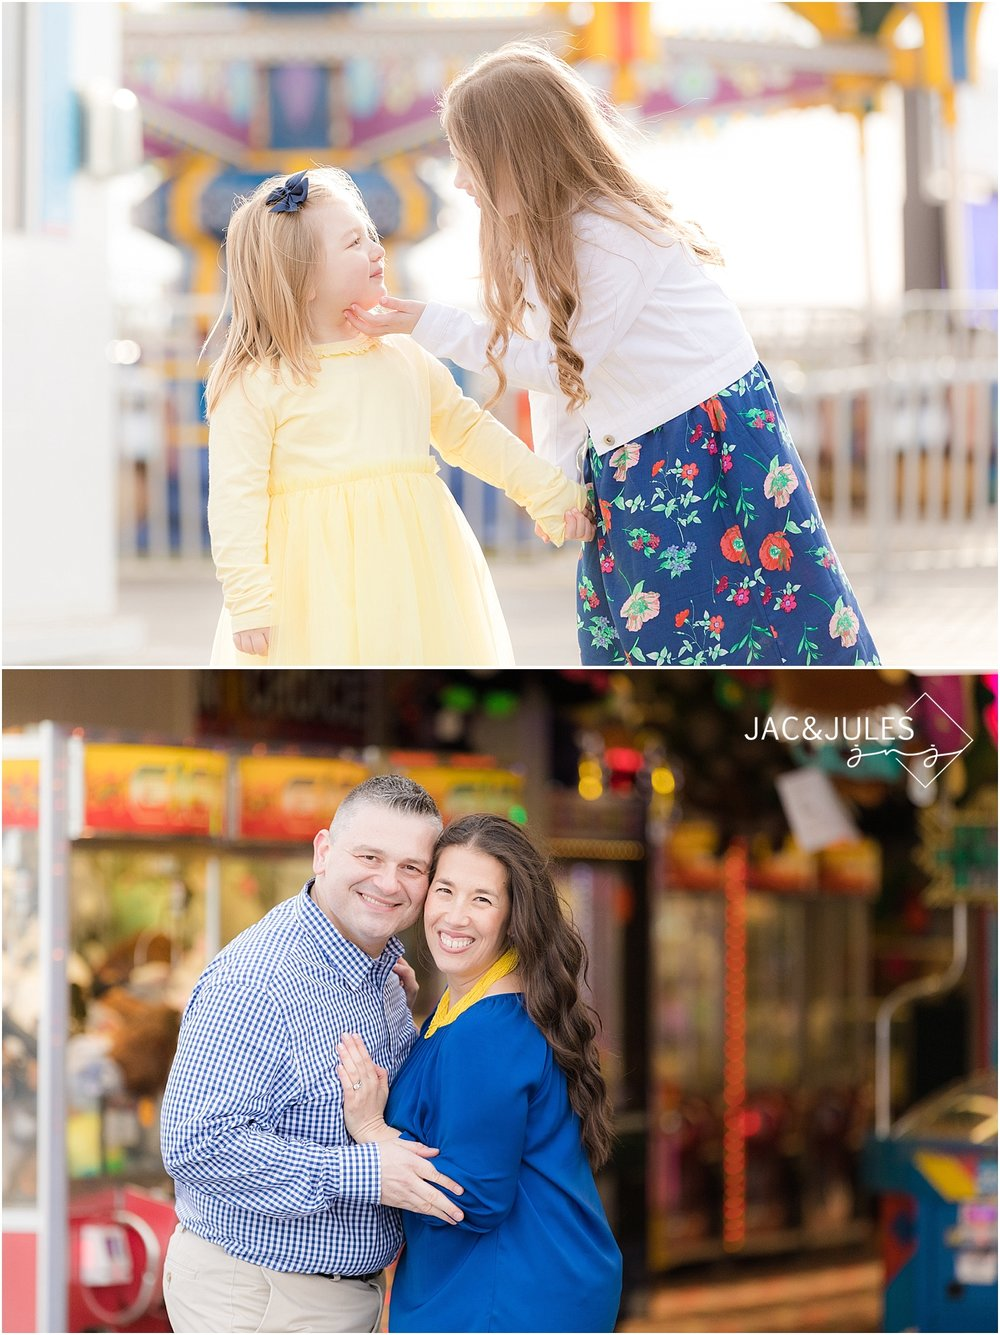 jacnjules photograph fun family portraits on the boardwalk in Point Pleasant NJ at the Jersey Shore